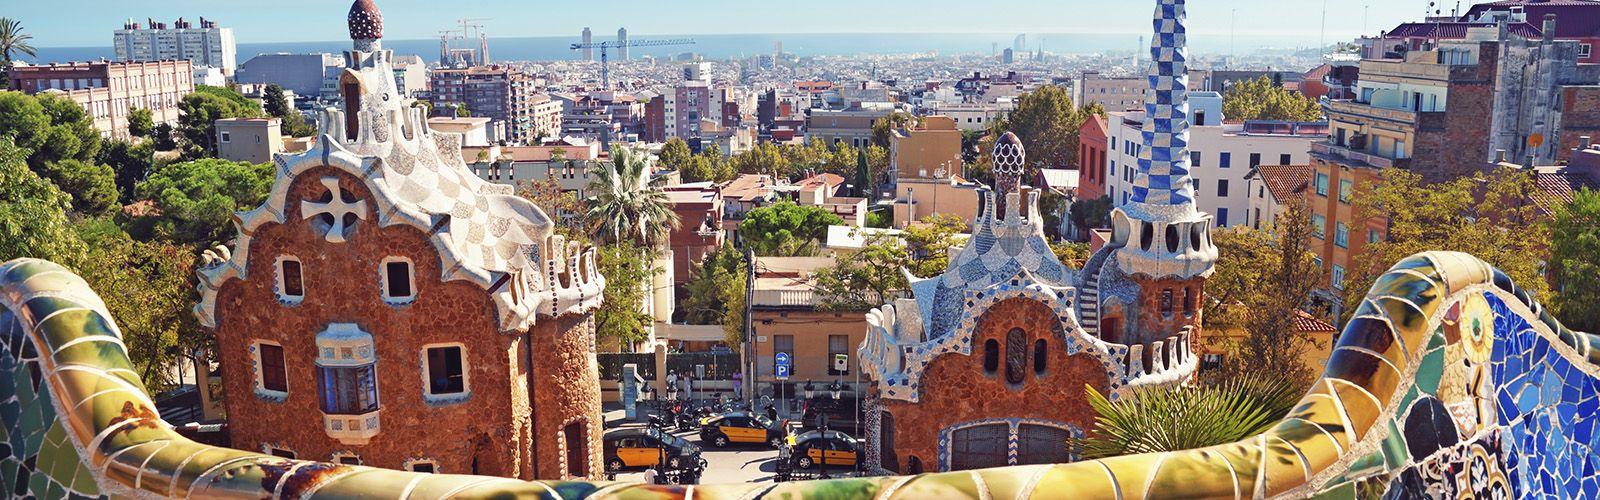 Trova week end convenienti a Barcellona I Skyscanner